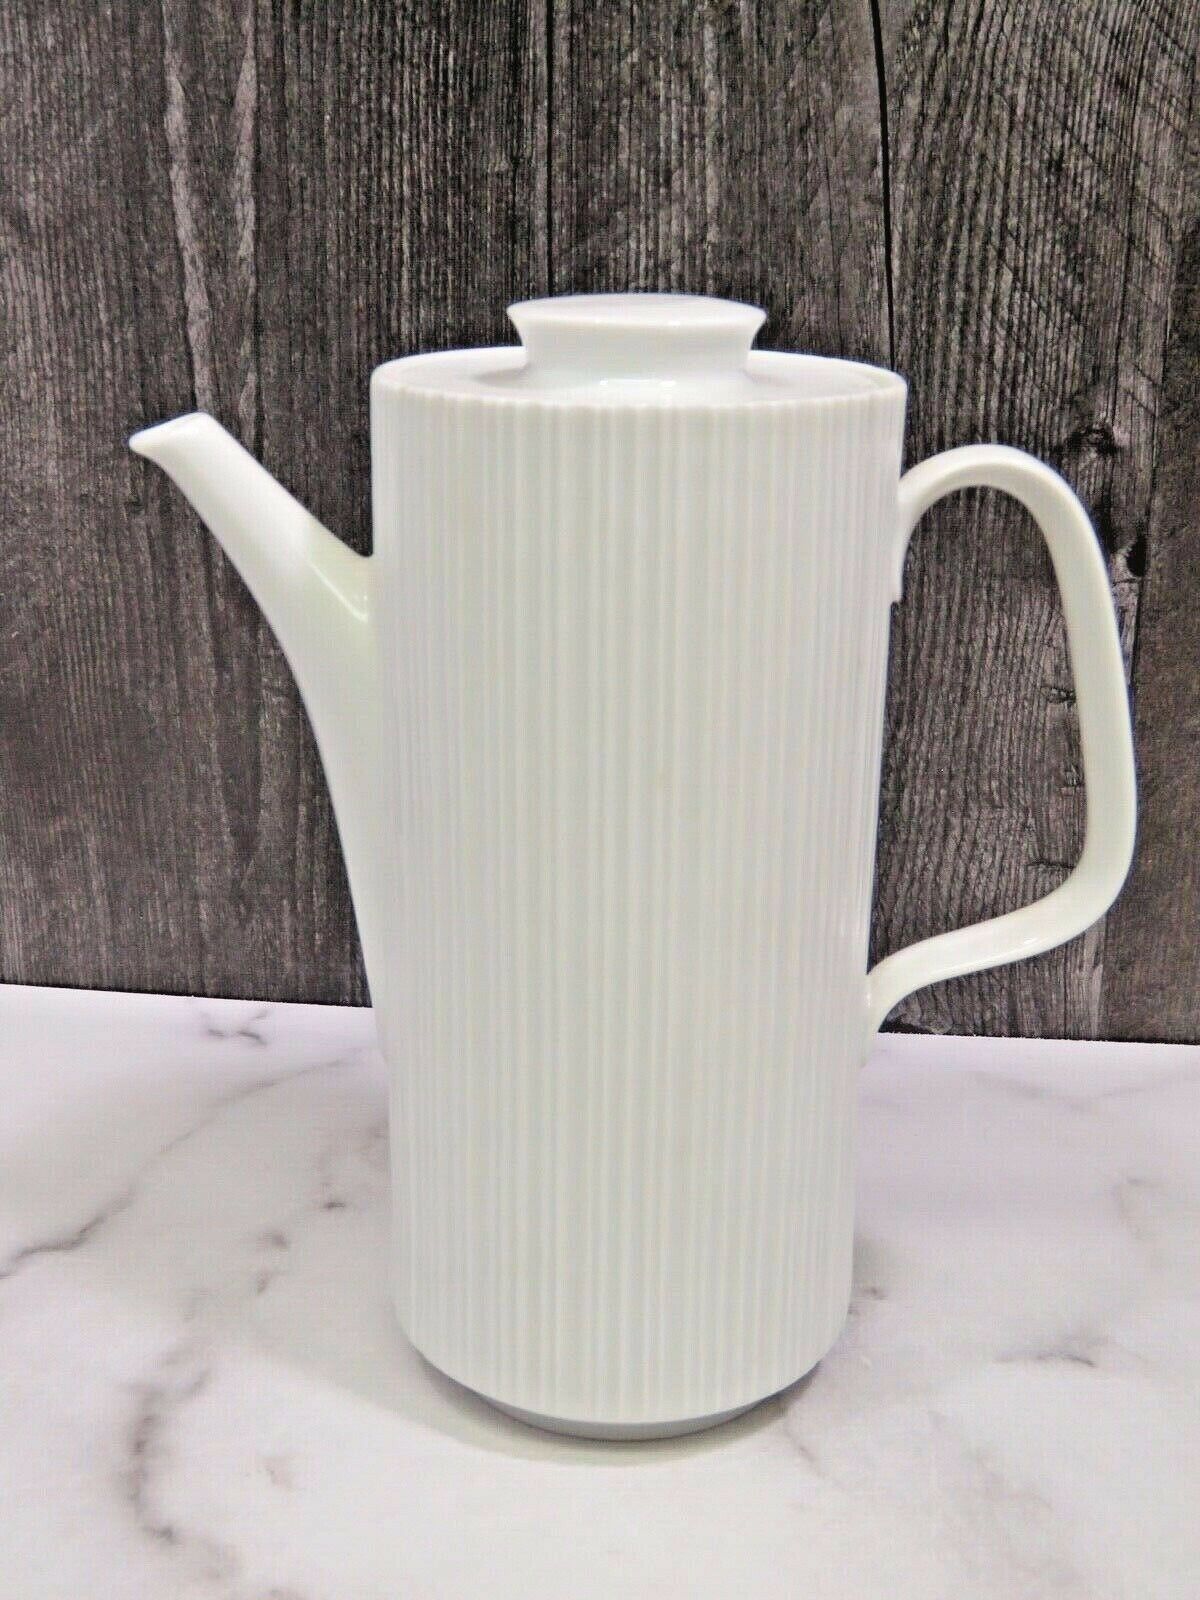 Primary image for Rosenthal Variations Tall Coffee Pot White Ribbed MCM